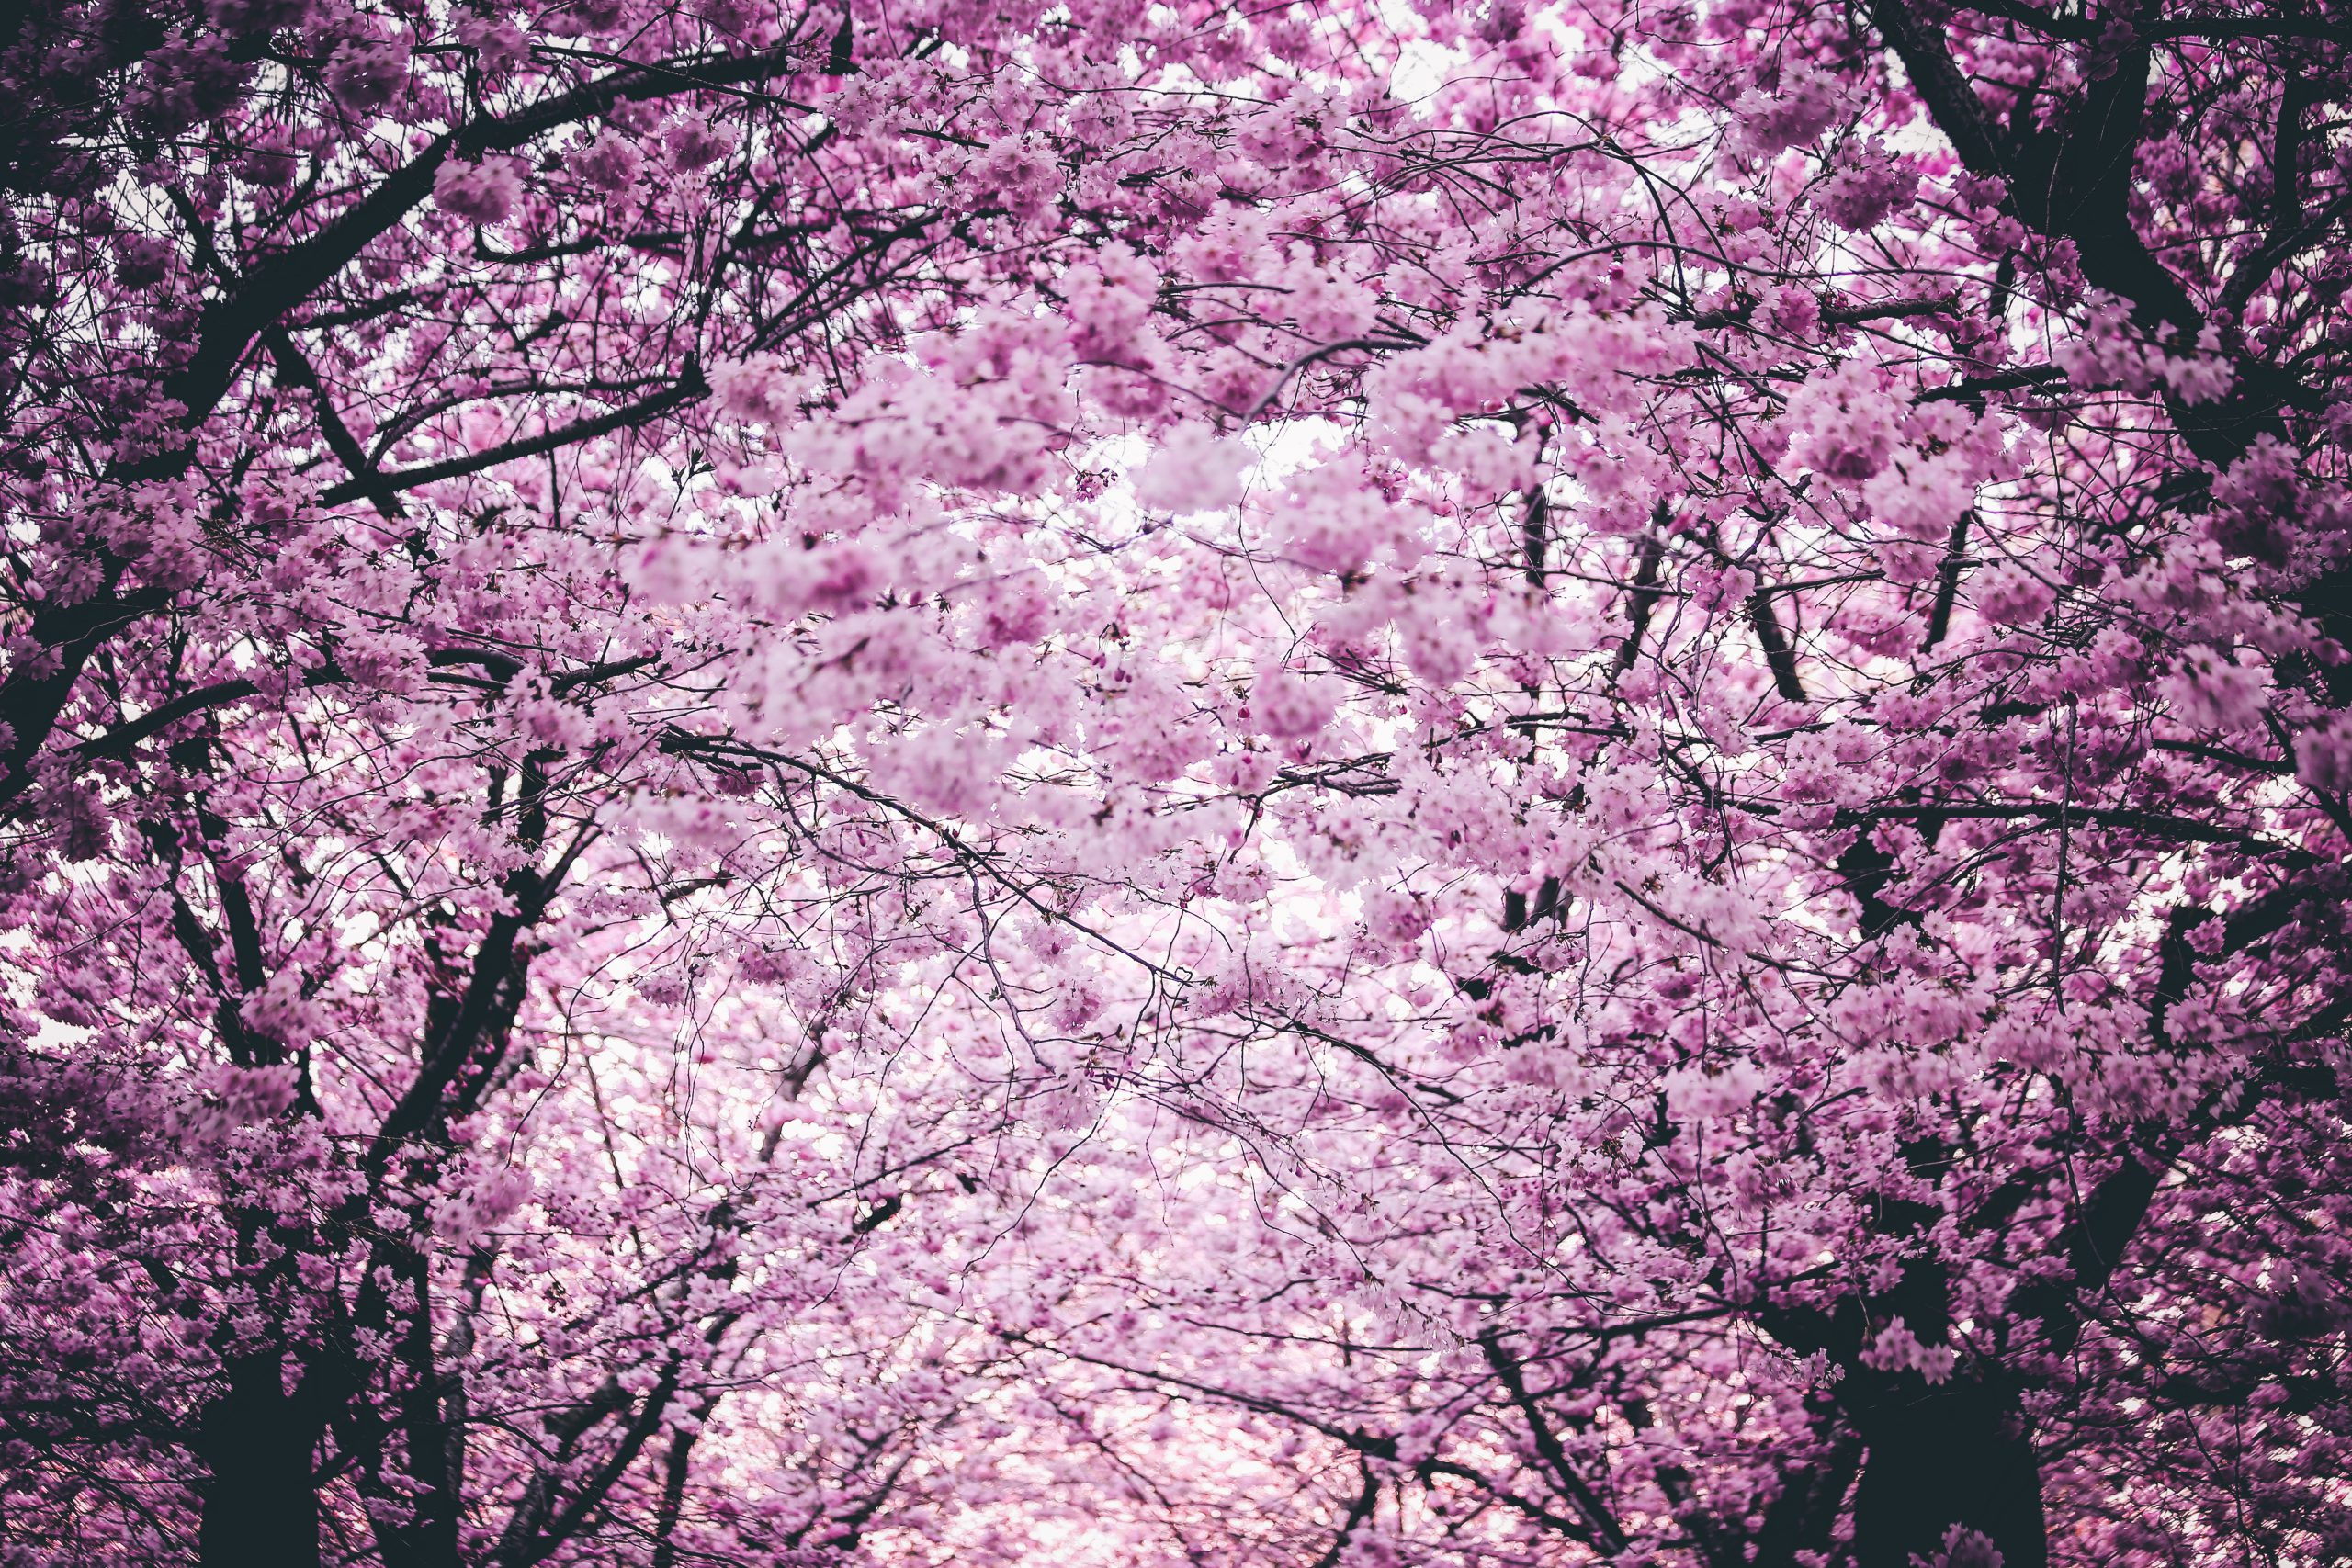 Celebrate Easter With Stunning Cherry Blossom Videos To Enjoy In Your Own Home